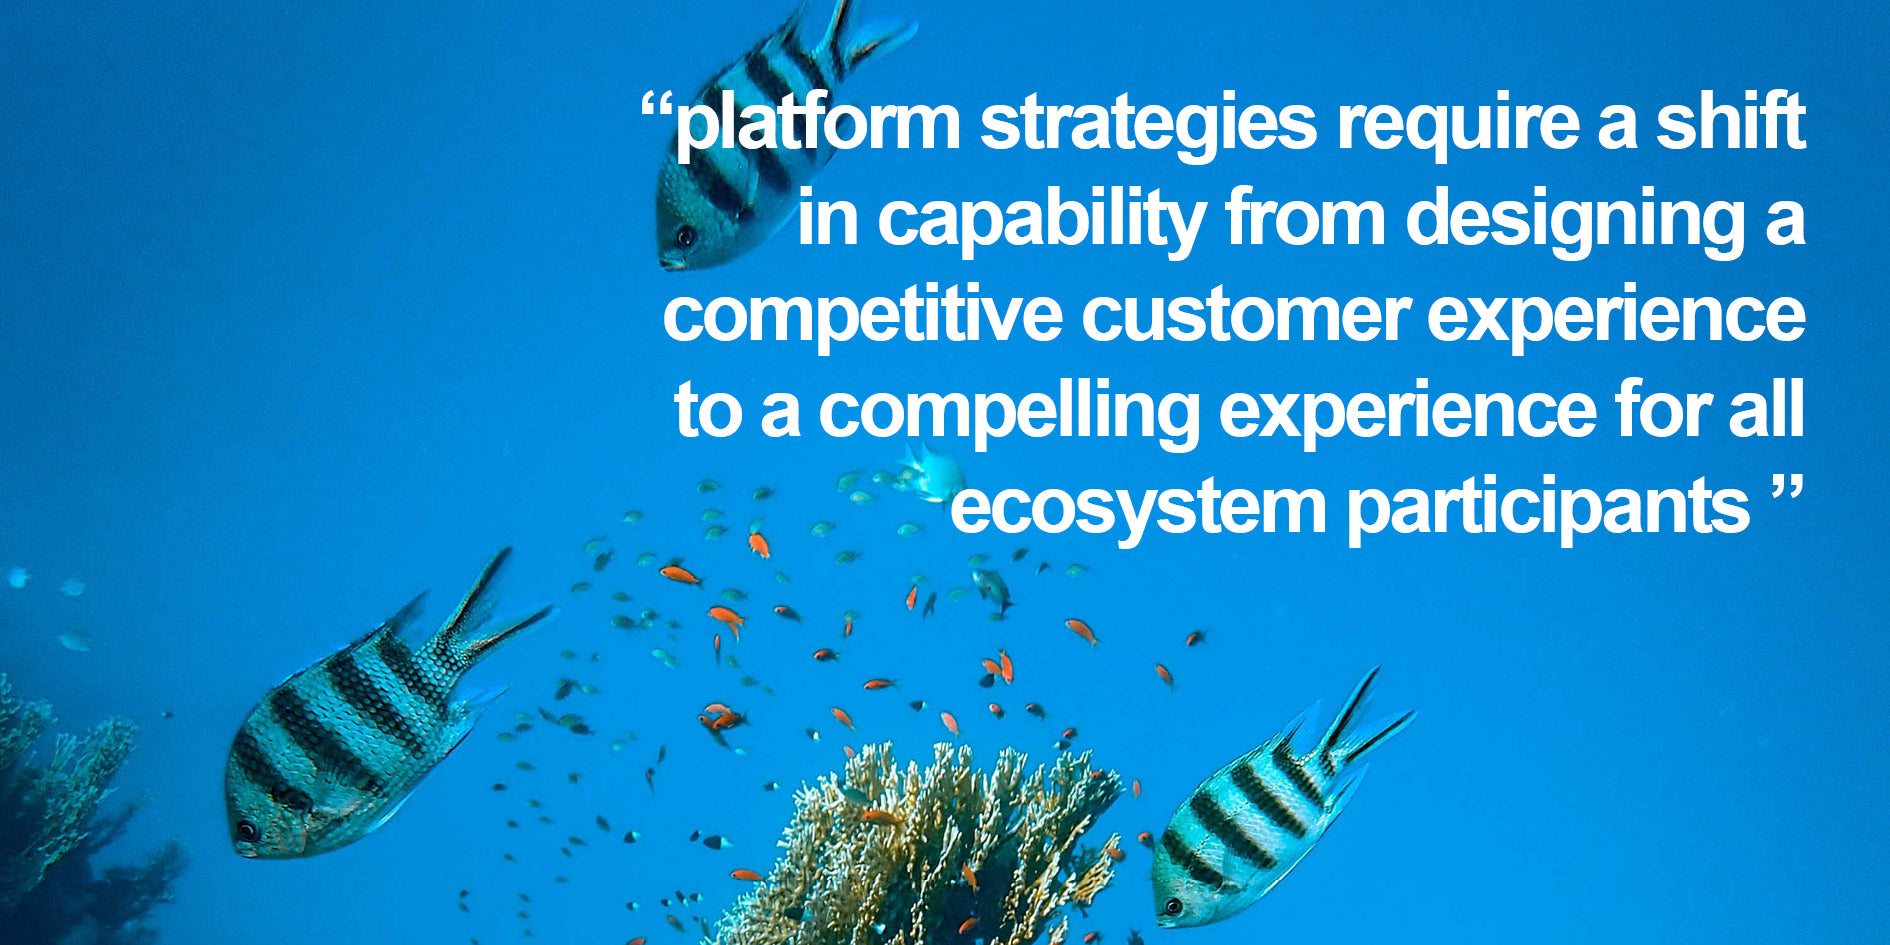 platfrom strategies demand capability at designing compelling experiences for all ecosystem participants